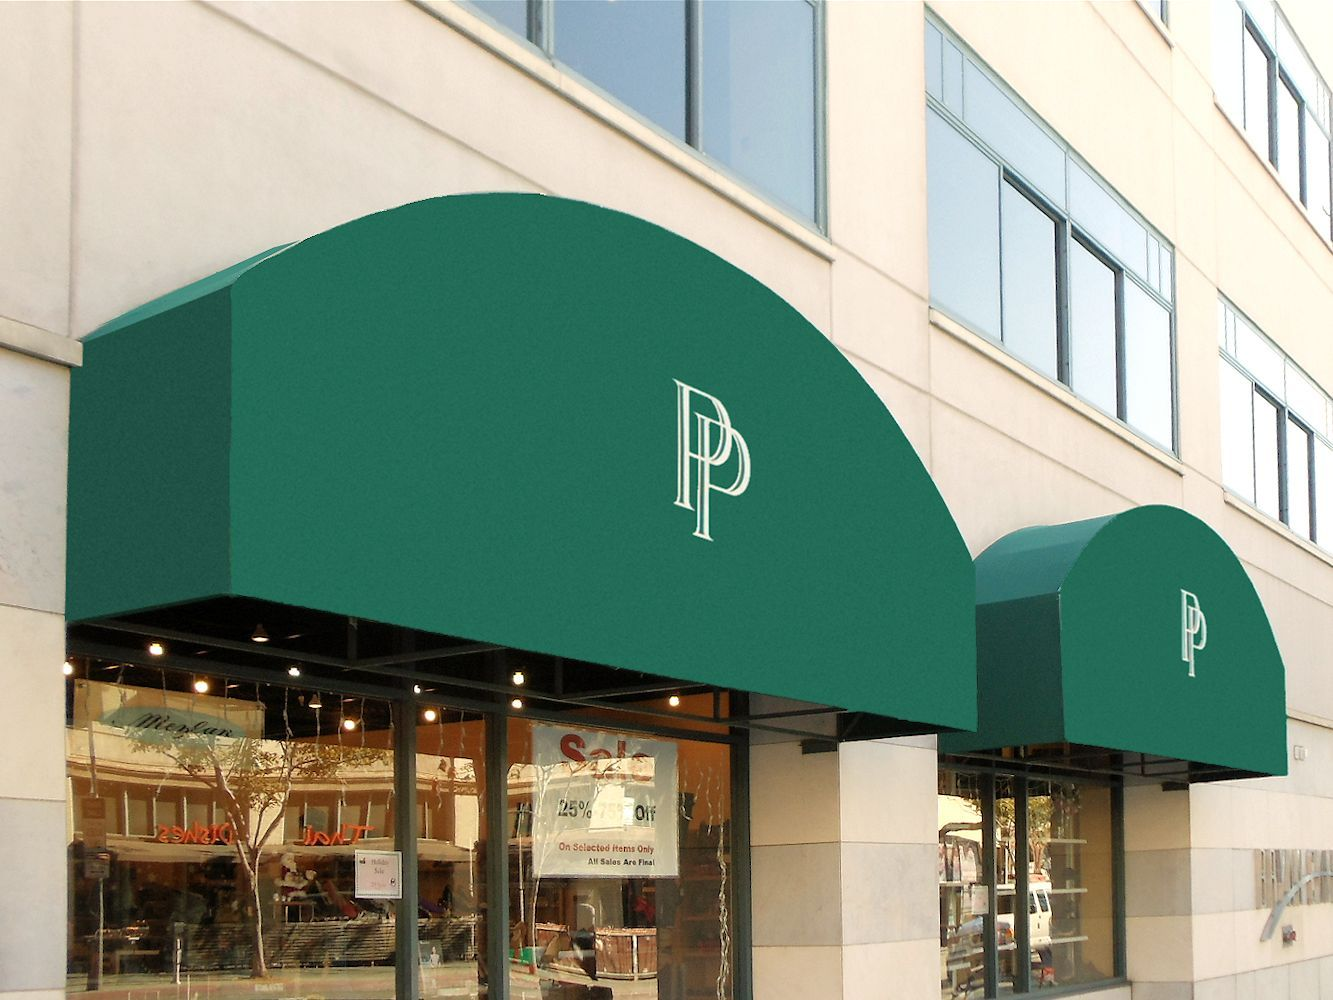 Commercial Awnings Canopies By Superior Awning Awning Shop Awning Custom Awnings